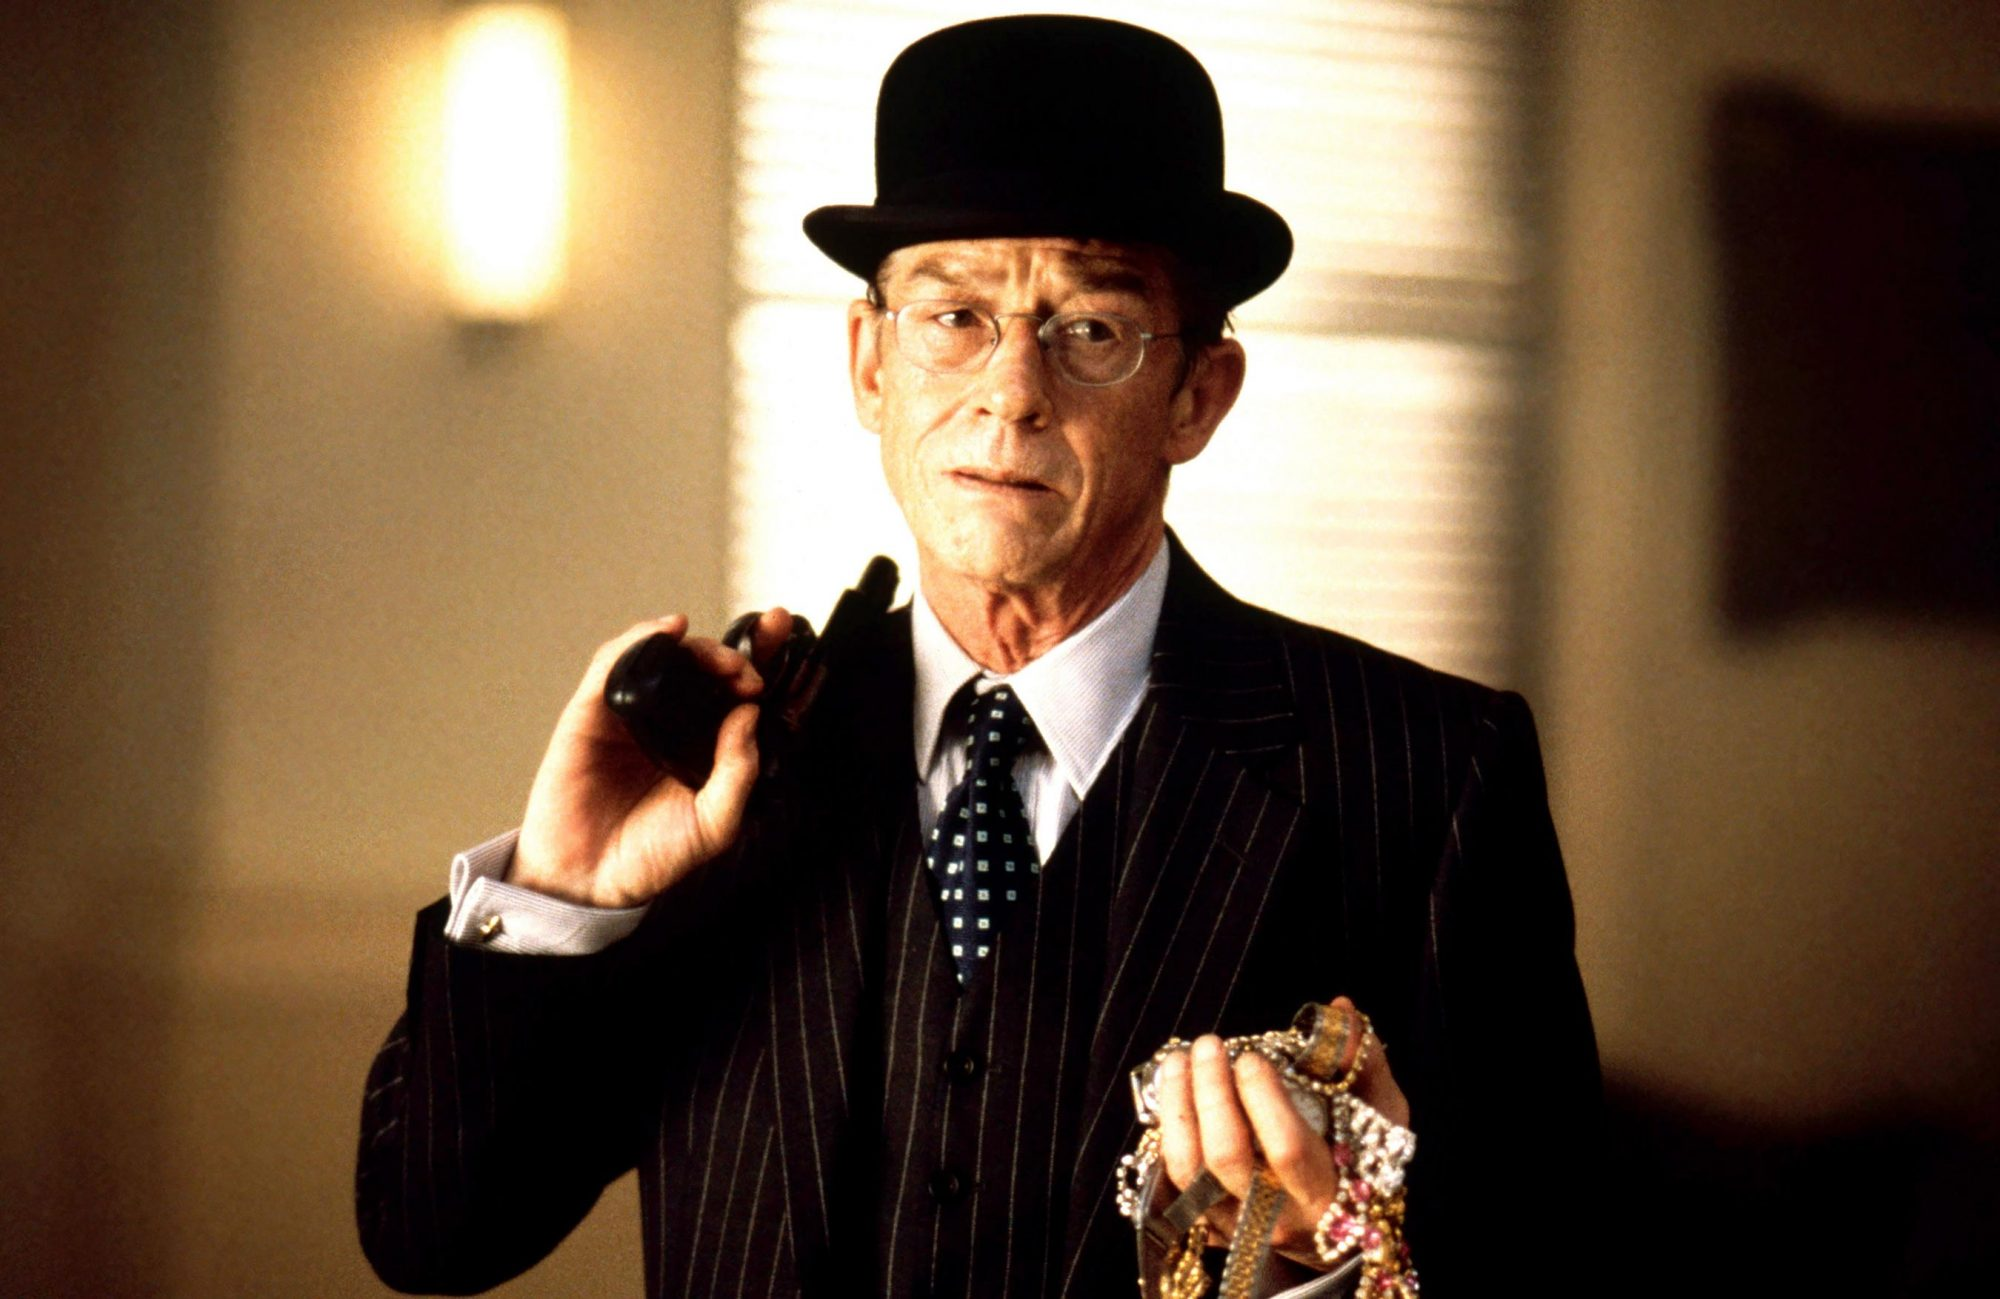 YOU'RE DEAD..., John Hurt, 1999,  ©Trident Releasing/courtesy Everett Collection